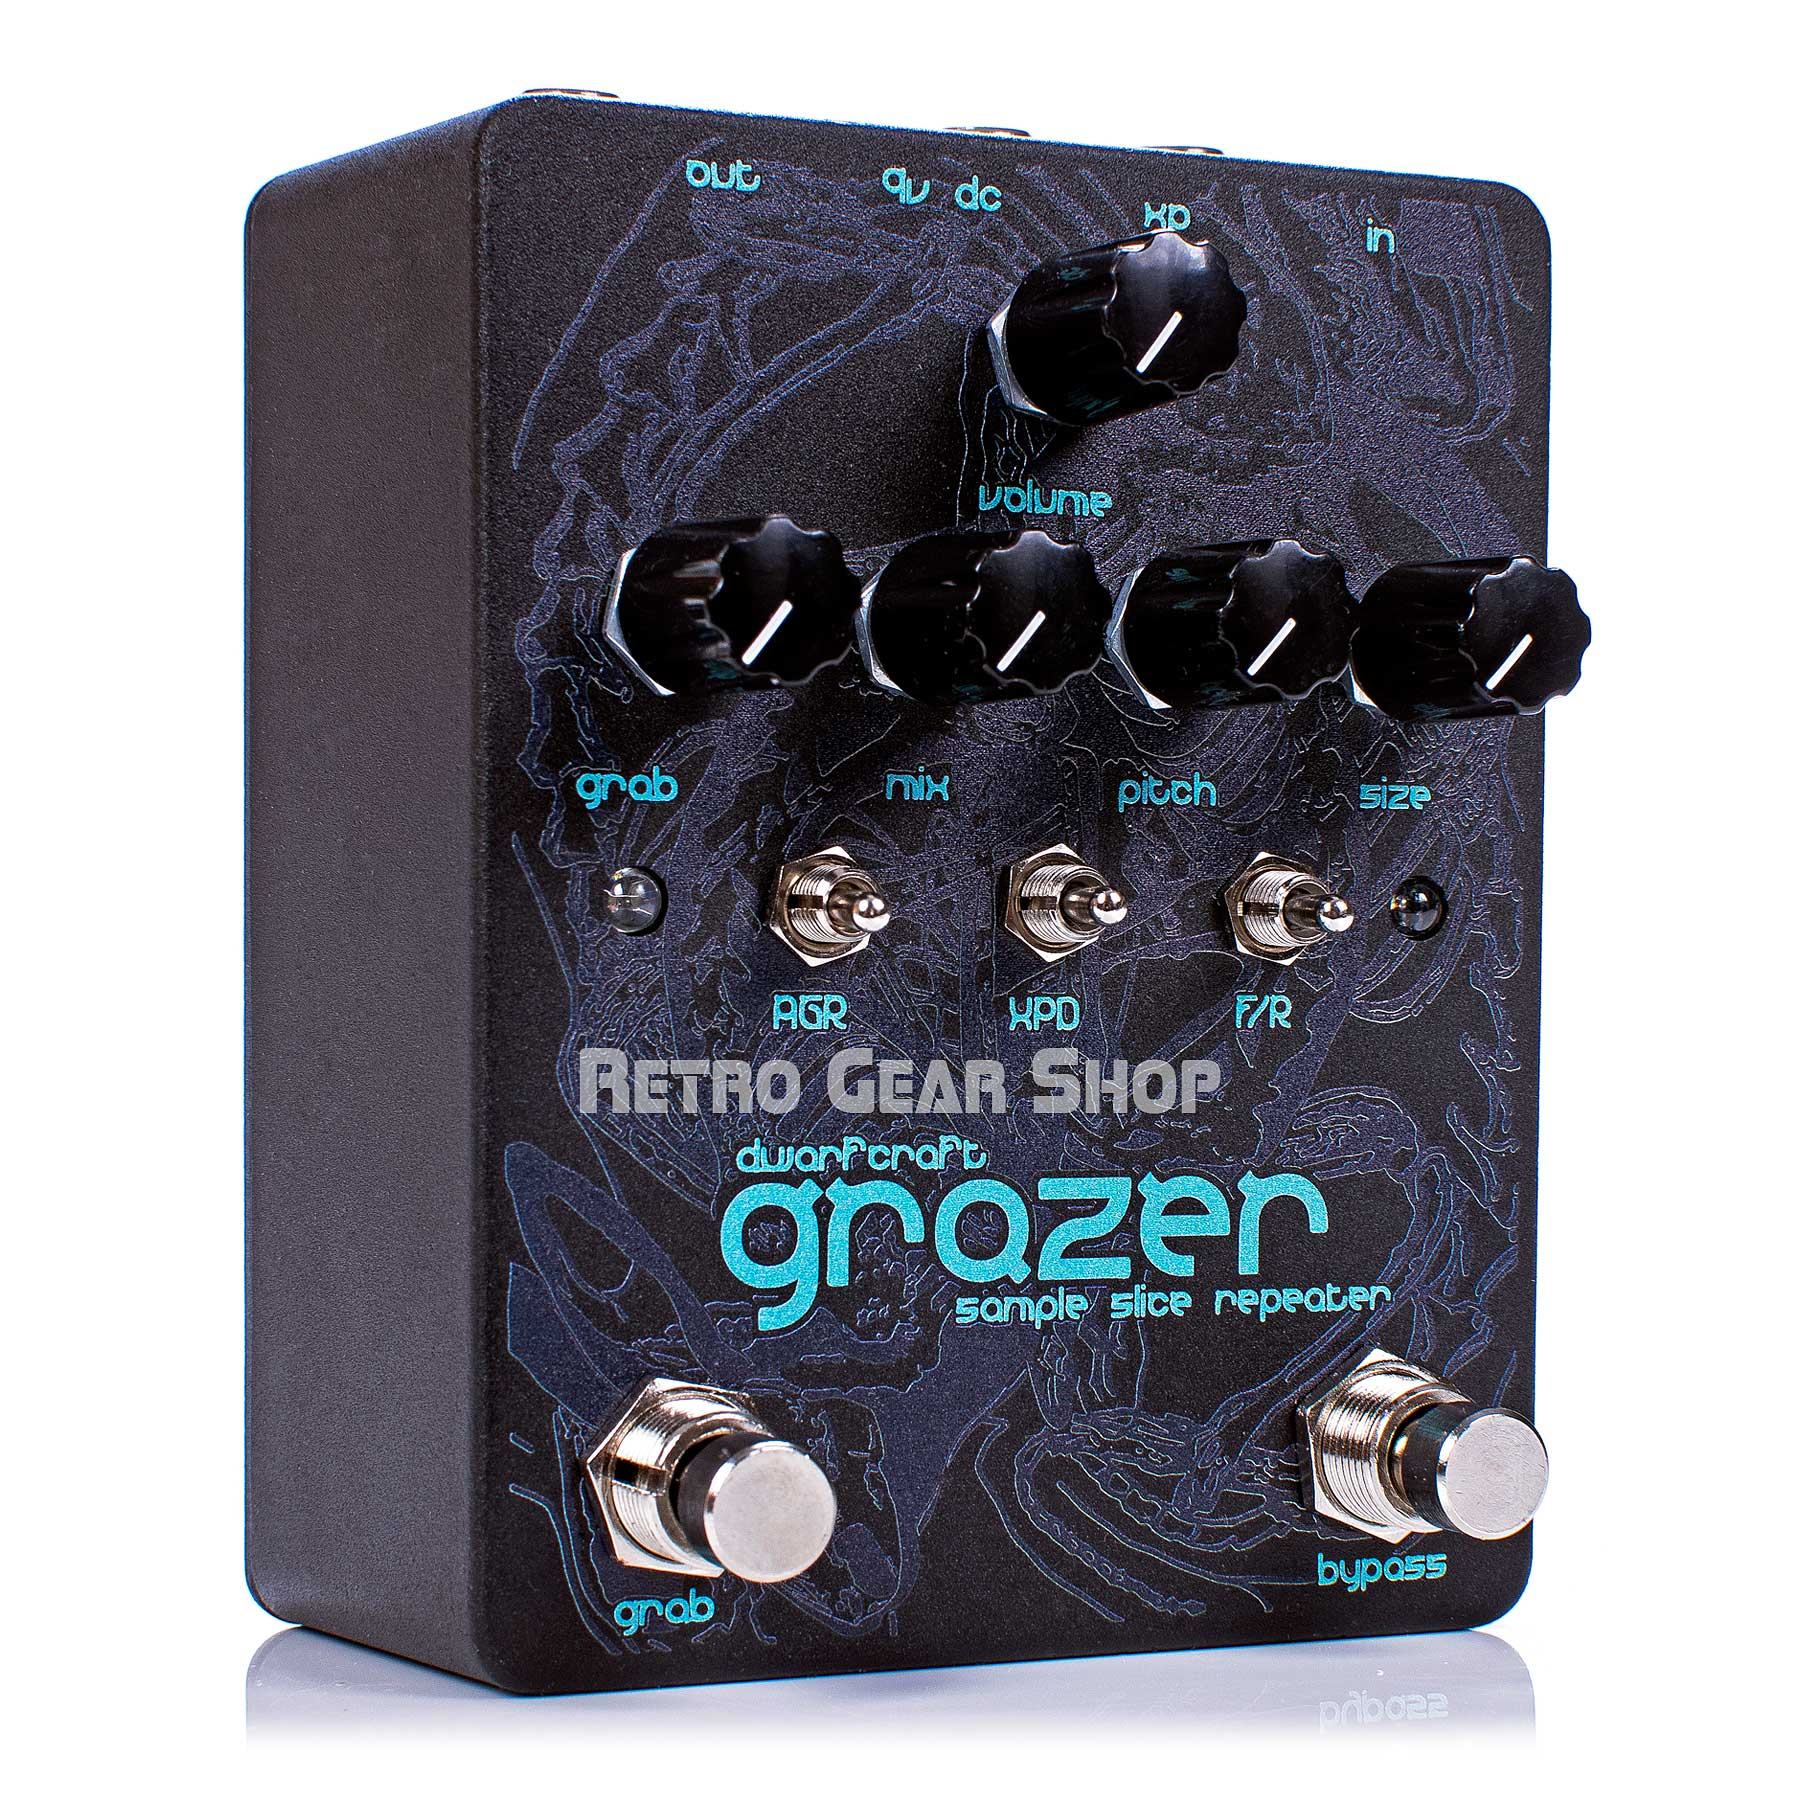 Dwarfcraft Devices Grazer Black Ice Limited Edition Granular Repeater Guitar Effect Pedal